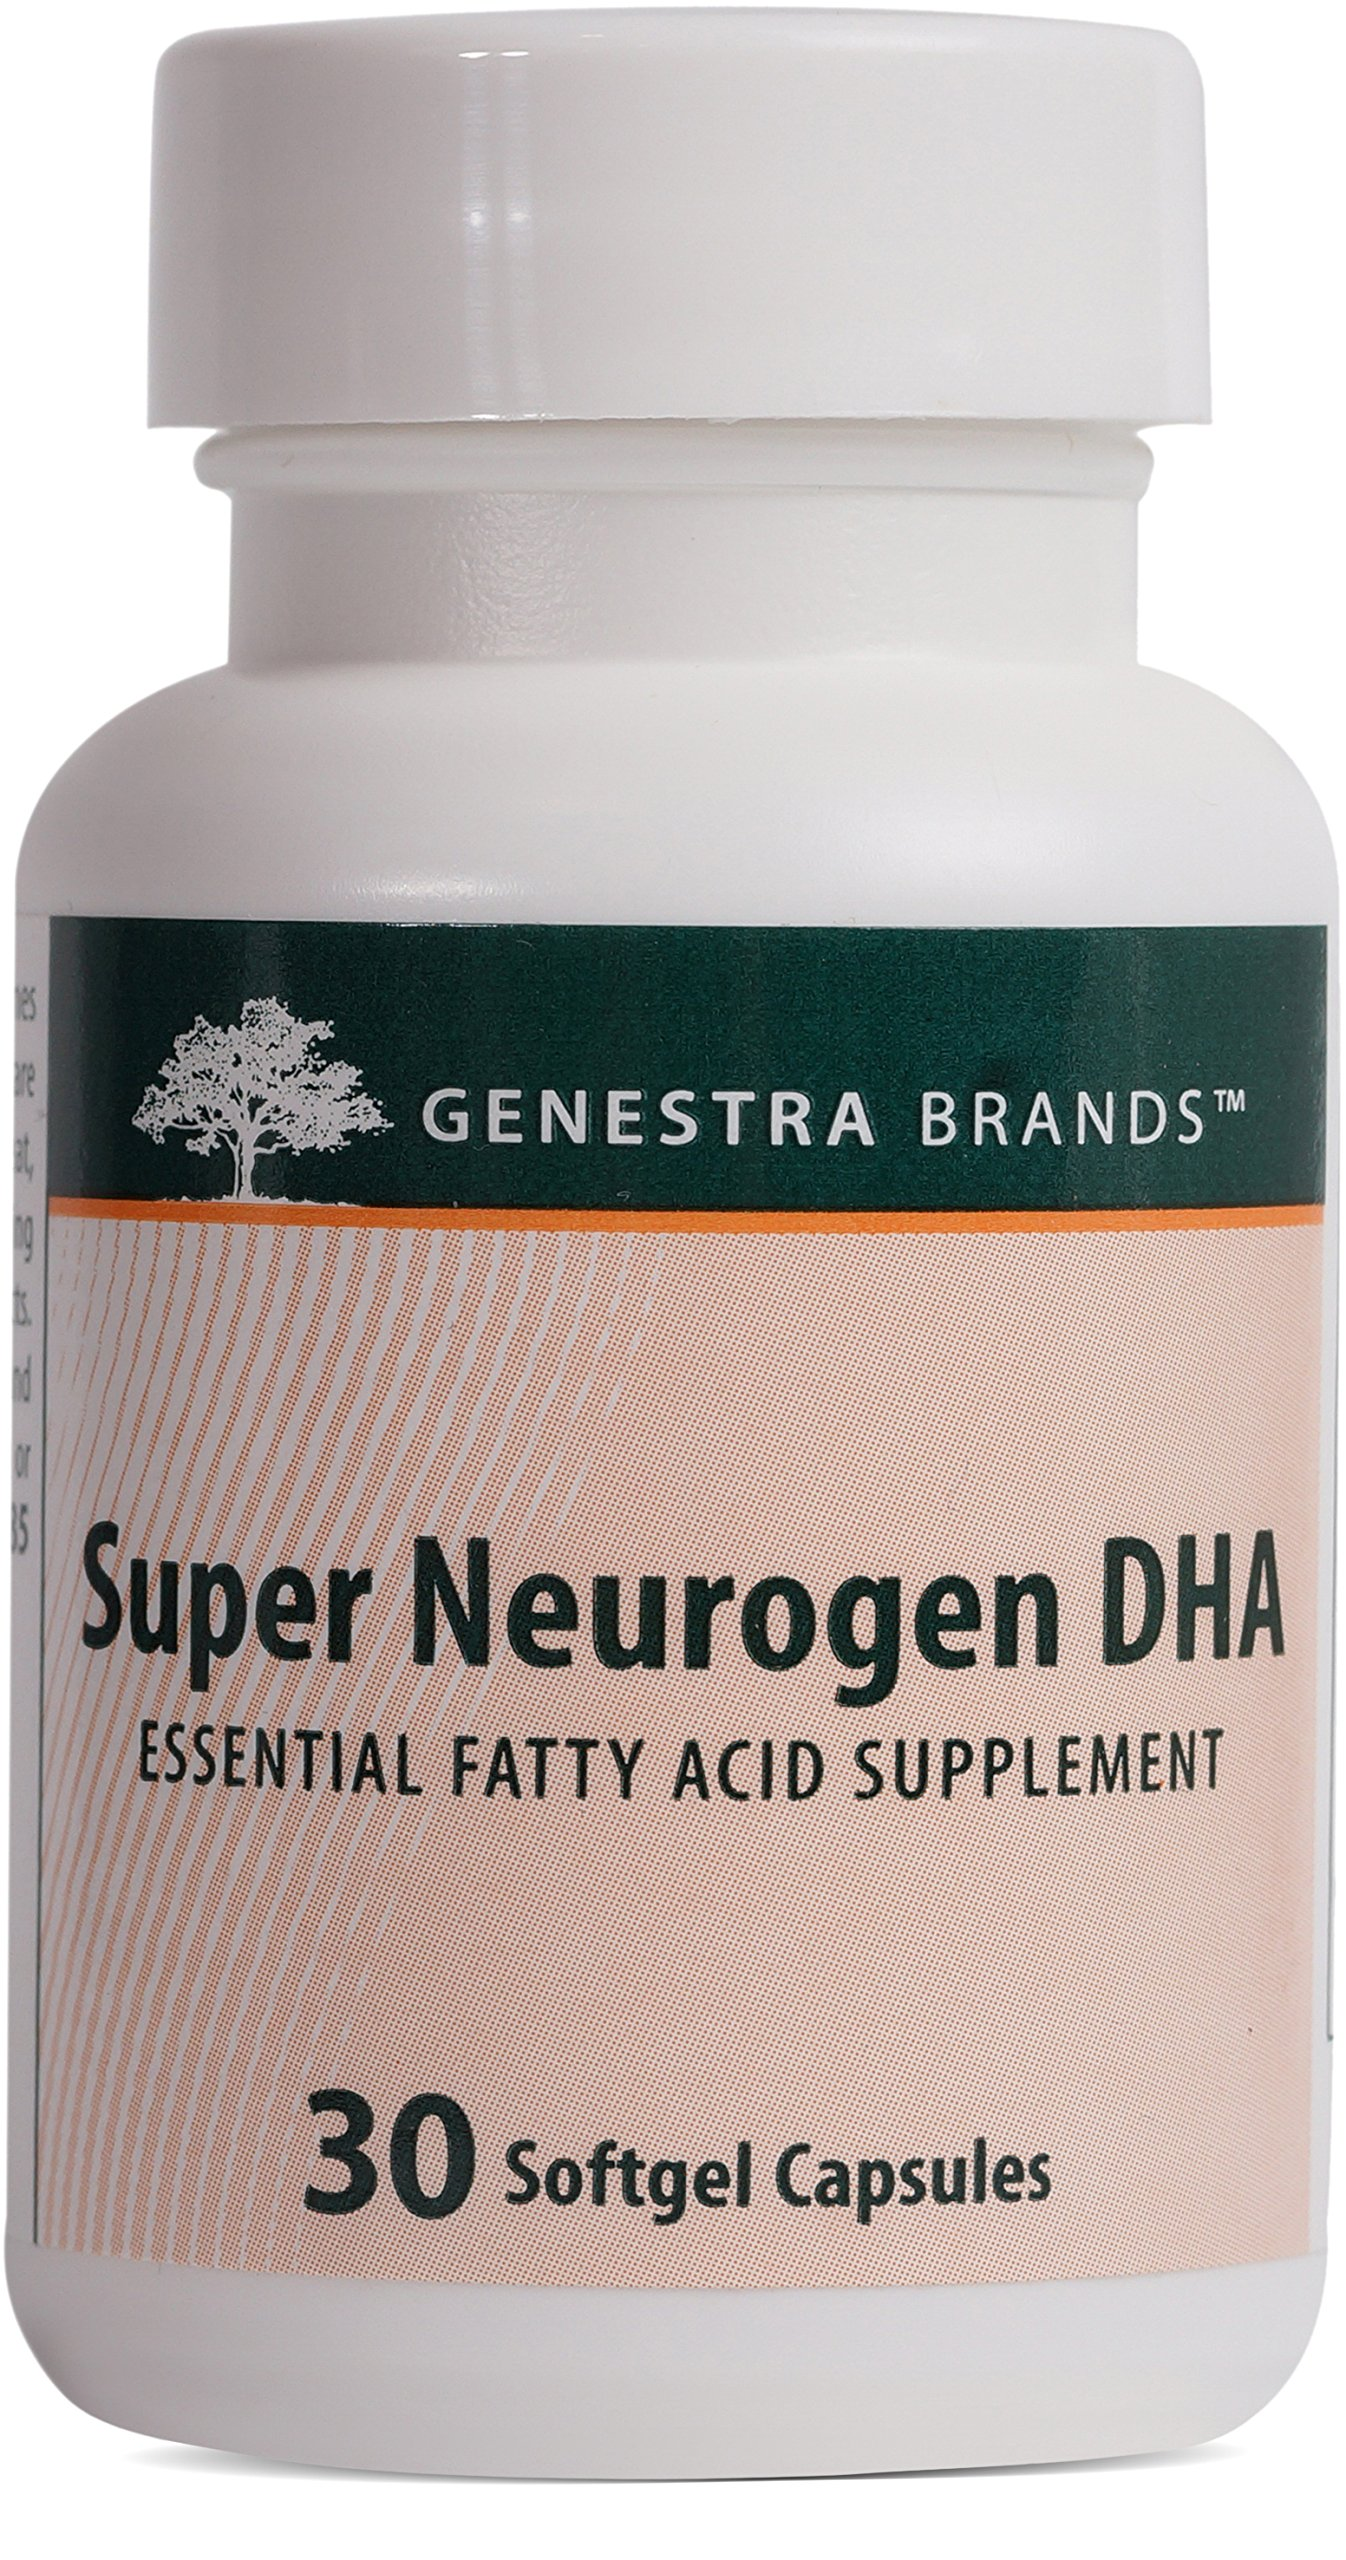 Genestra Brands - Super Neurogen DHA - Supports Memory, Cognitive and Neuronal Health* - 30 Softgel Capsules